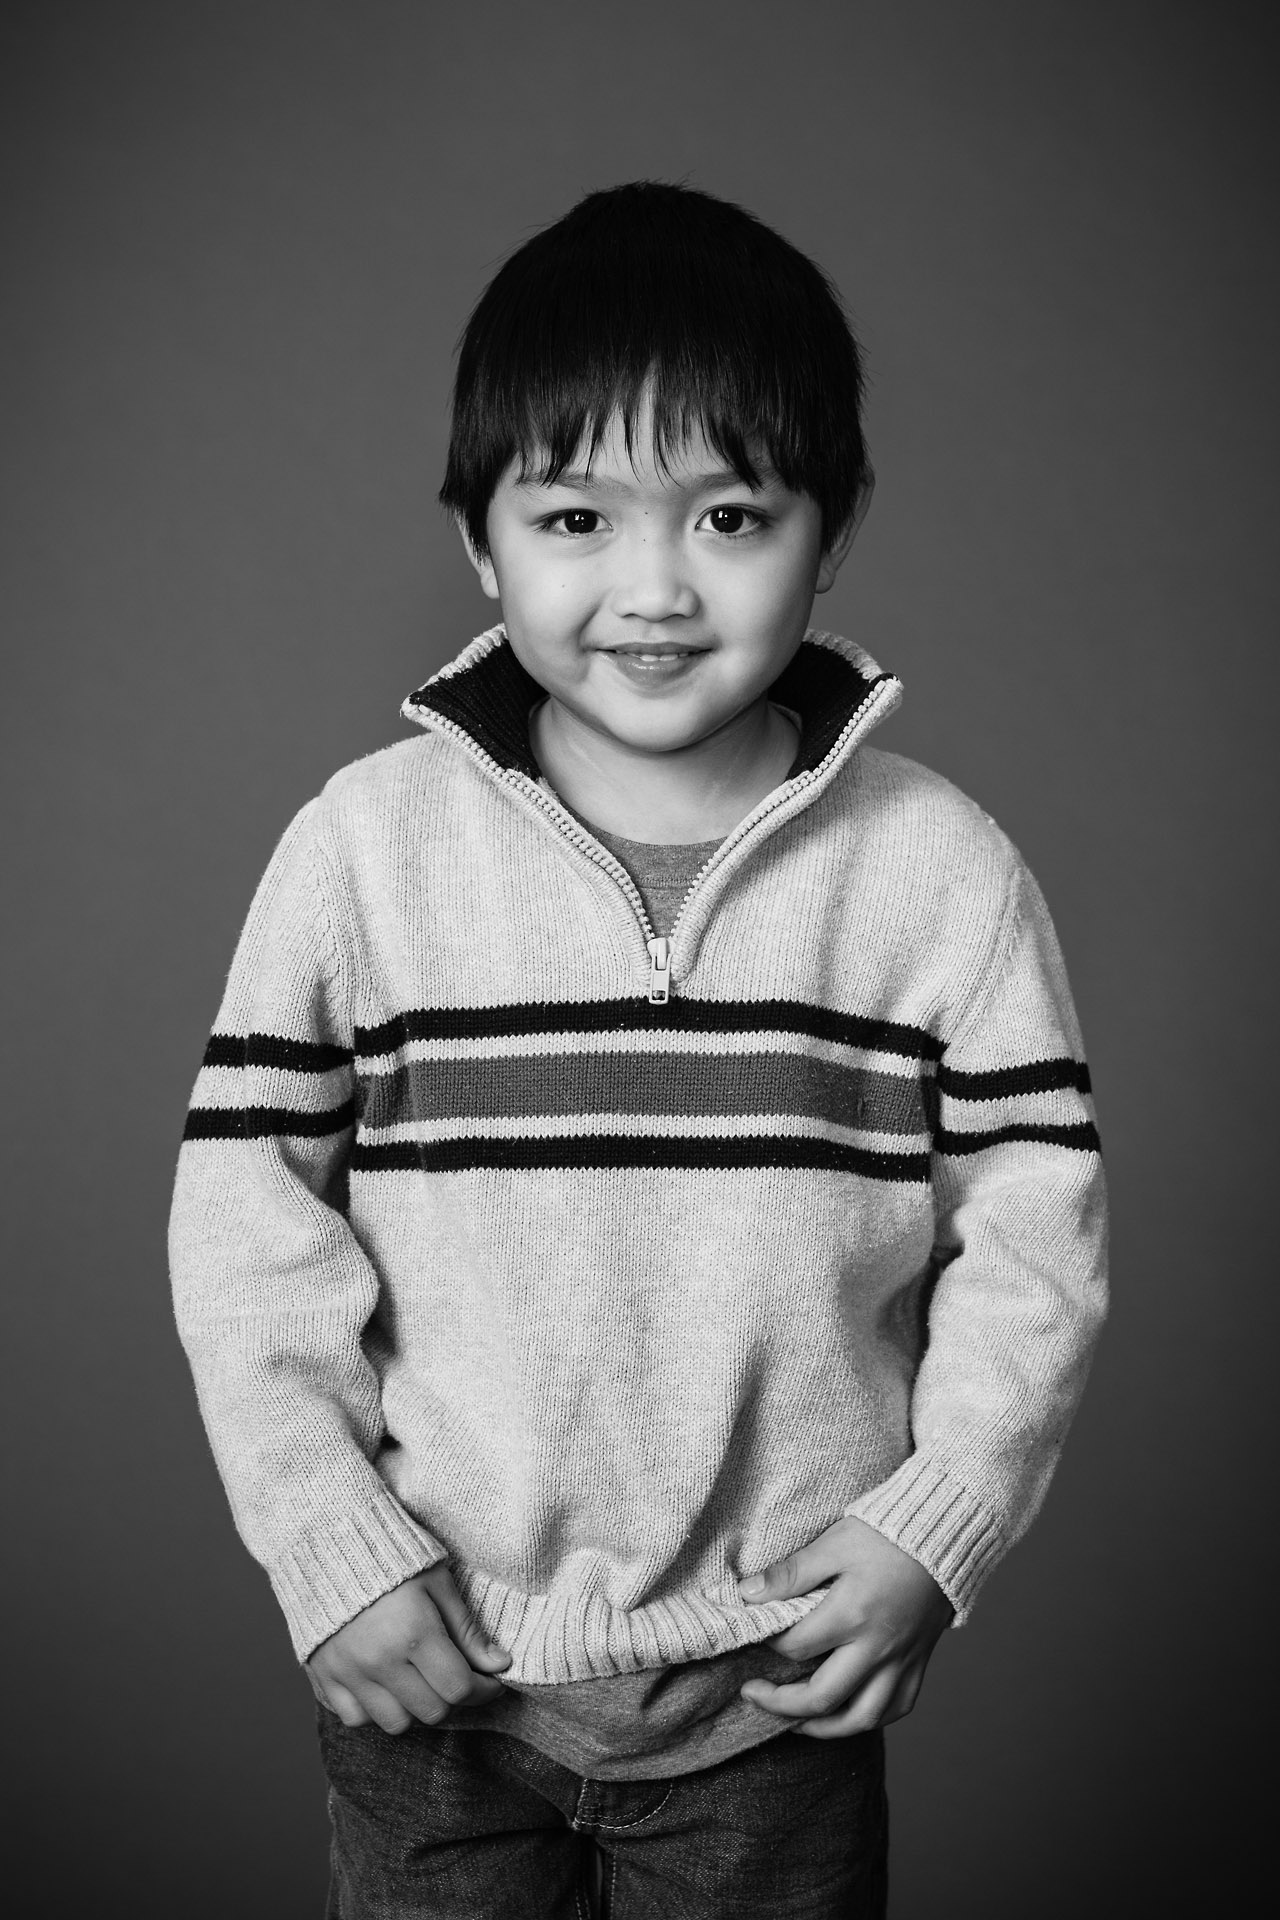 Flashes of Hope is a non-profit that provides free photo-shoots for those affected by childhood diseases included cancer and leukemia. We take portraits of the kids by themselves, with their families, with the favourite doctors and nurses.